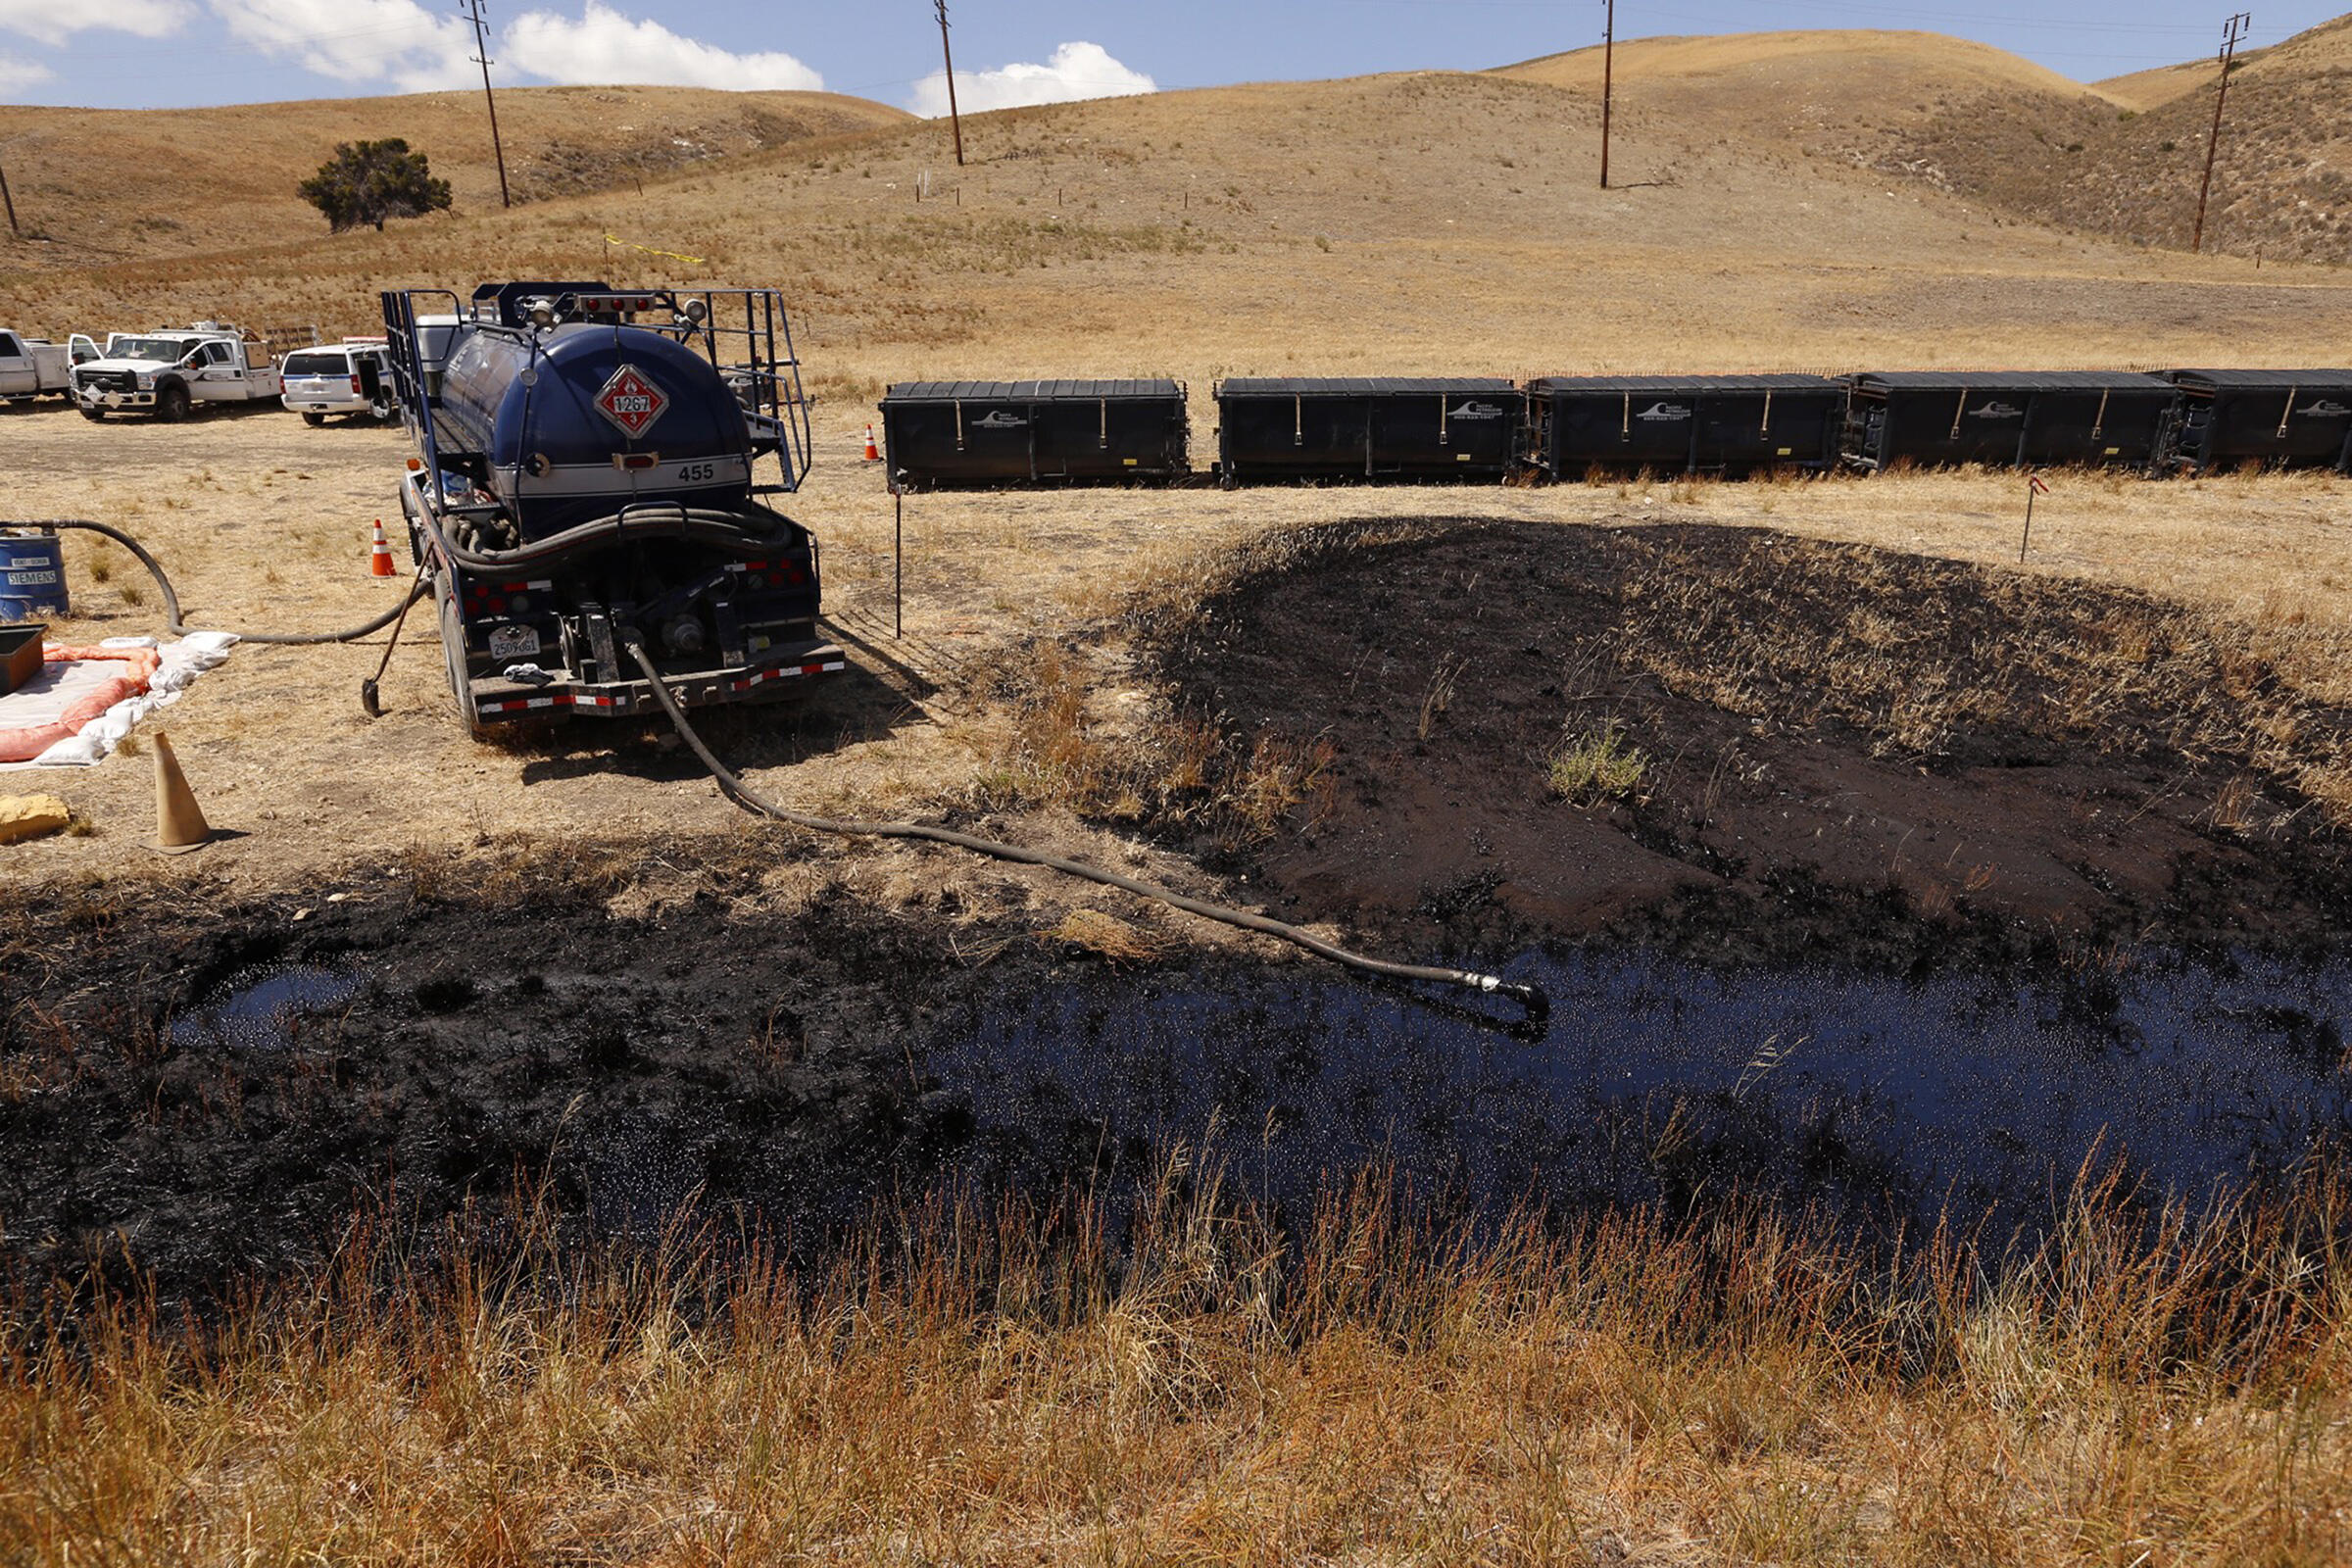 The point of origin where the pipeline ruptured, spewing at least 21,000 gallons of crude oil into the open ocean, via an underground storm drain pipe. © 2015 Al Seib/Los Angeles Times. Used with Permission.